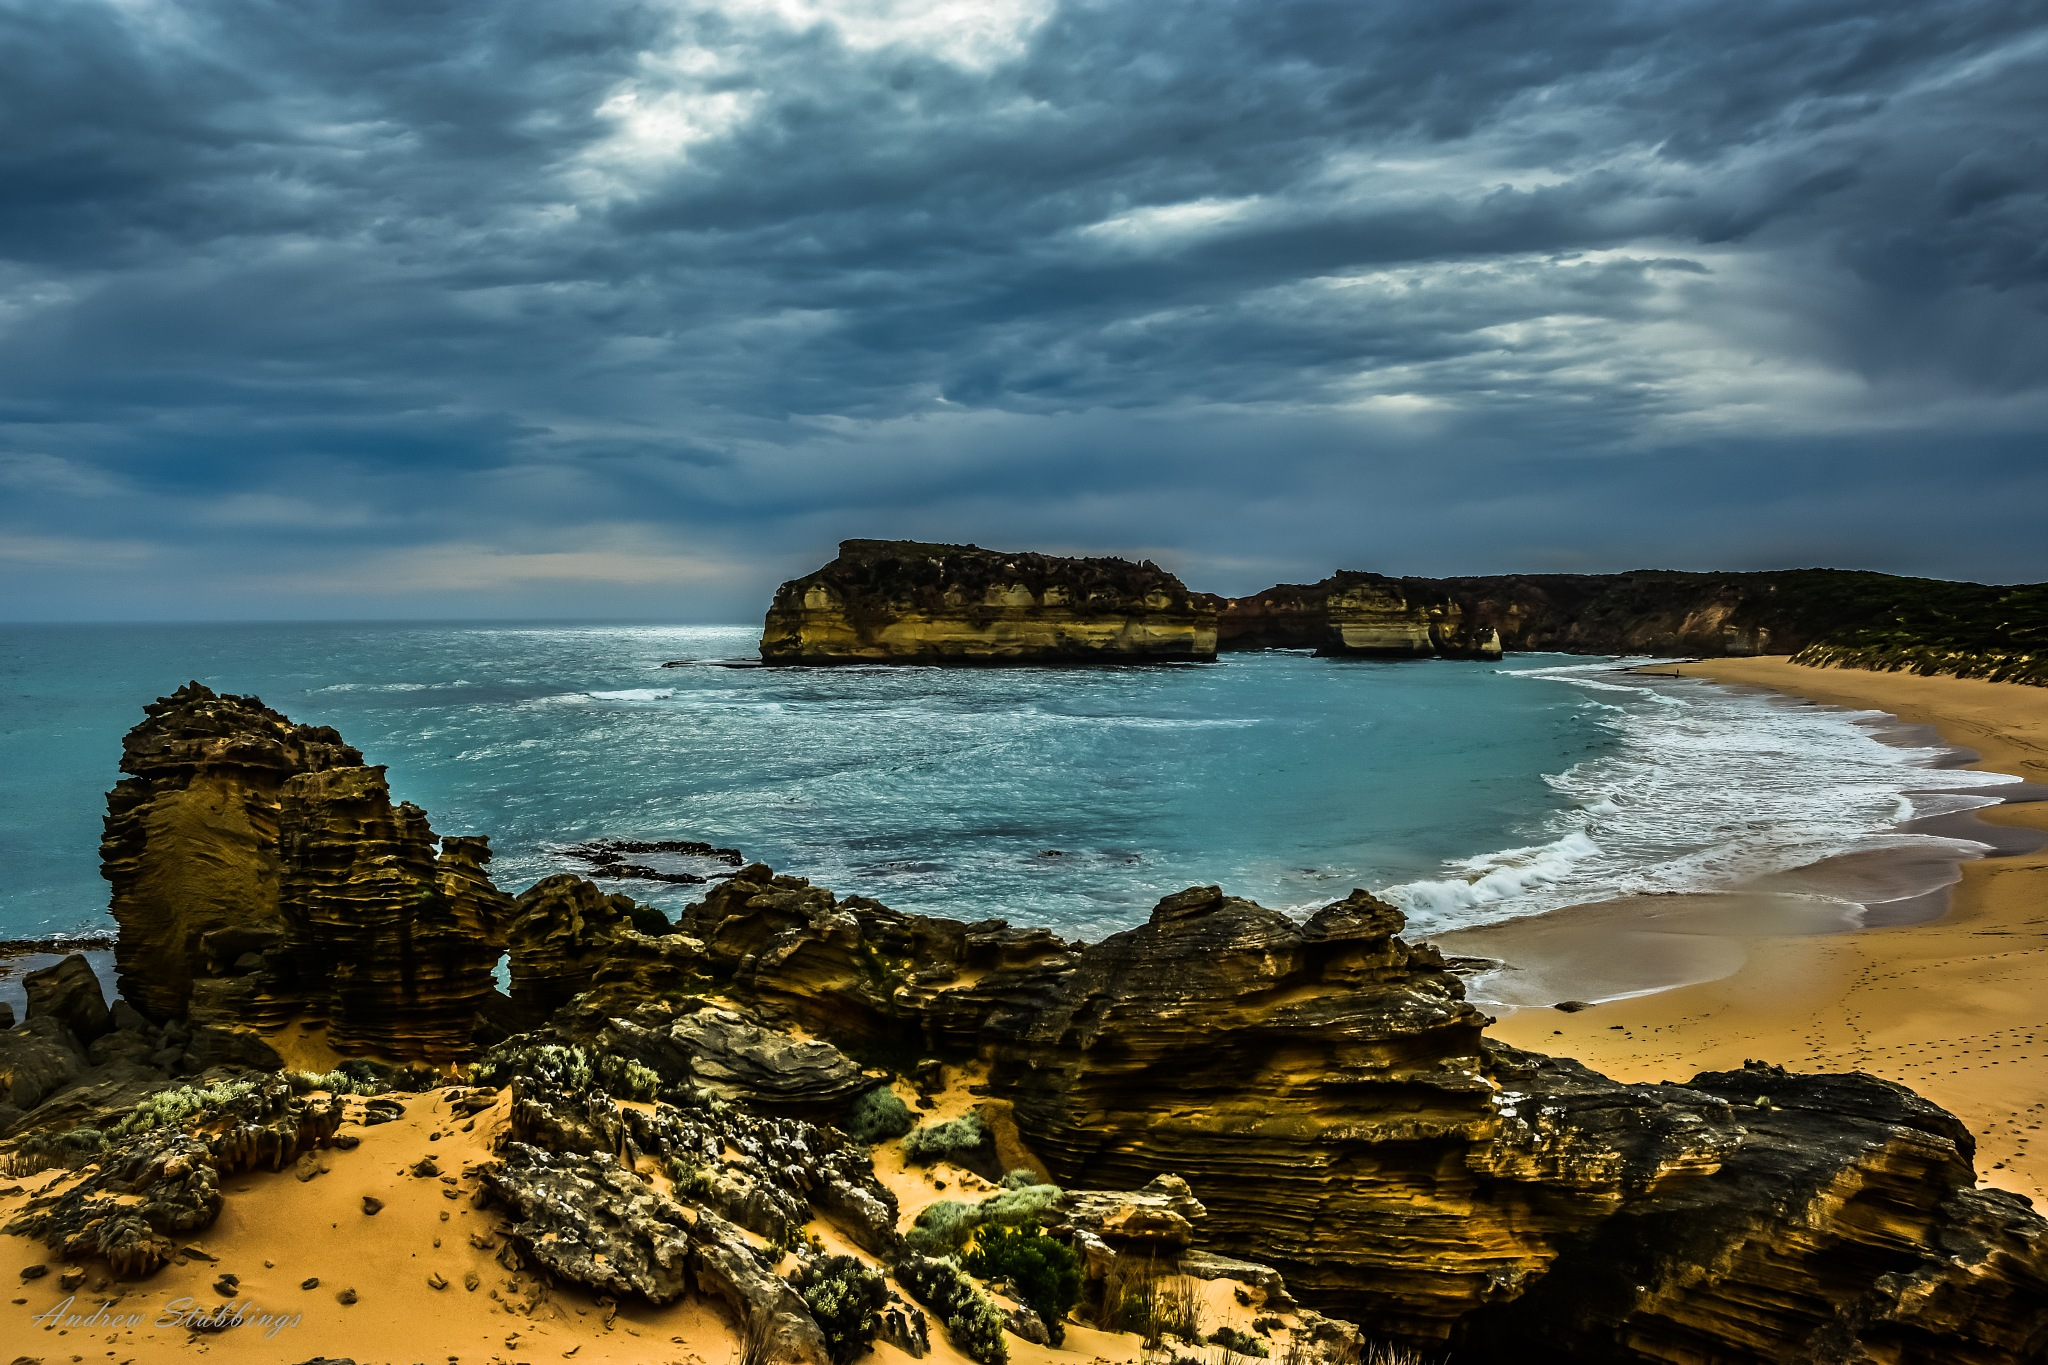 Sandy Cove by Andrew Stubbings